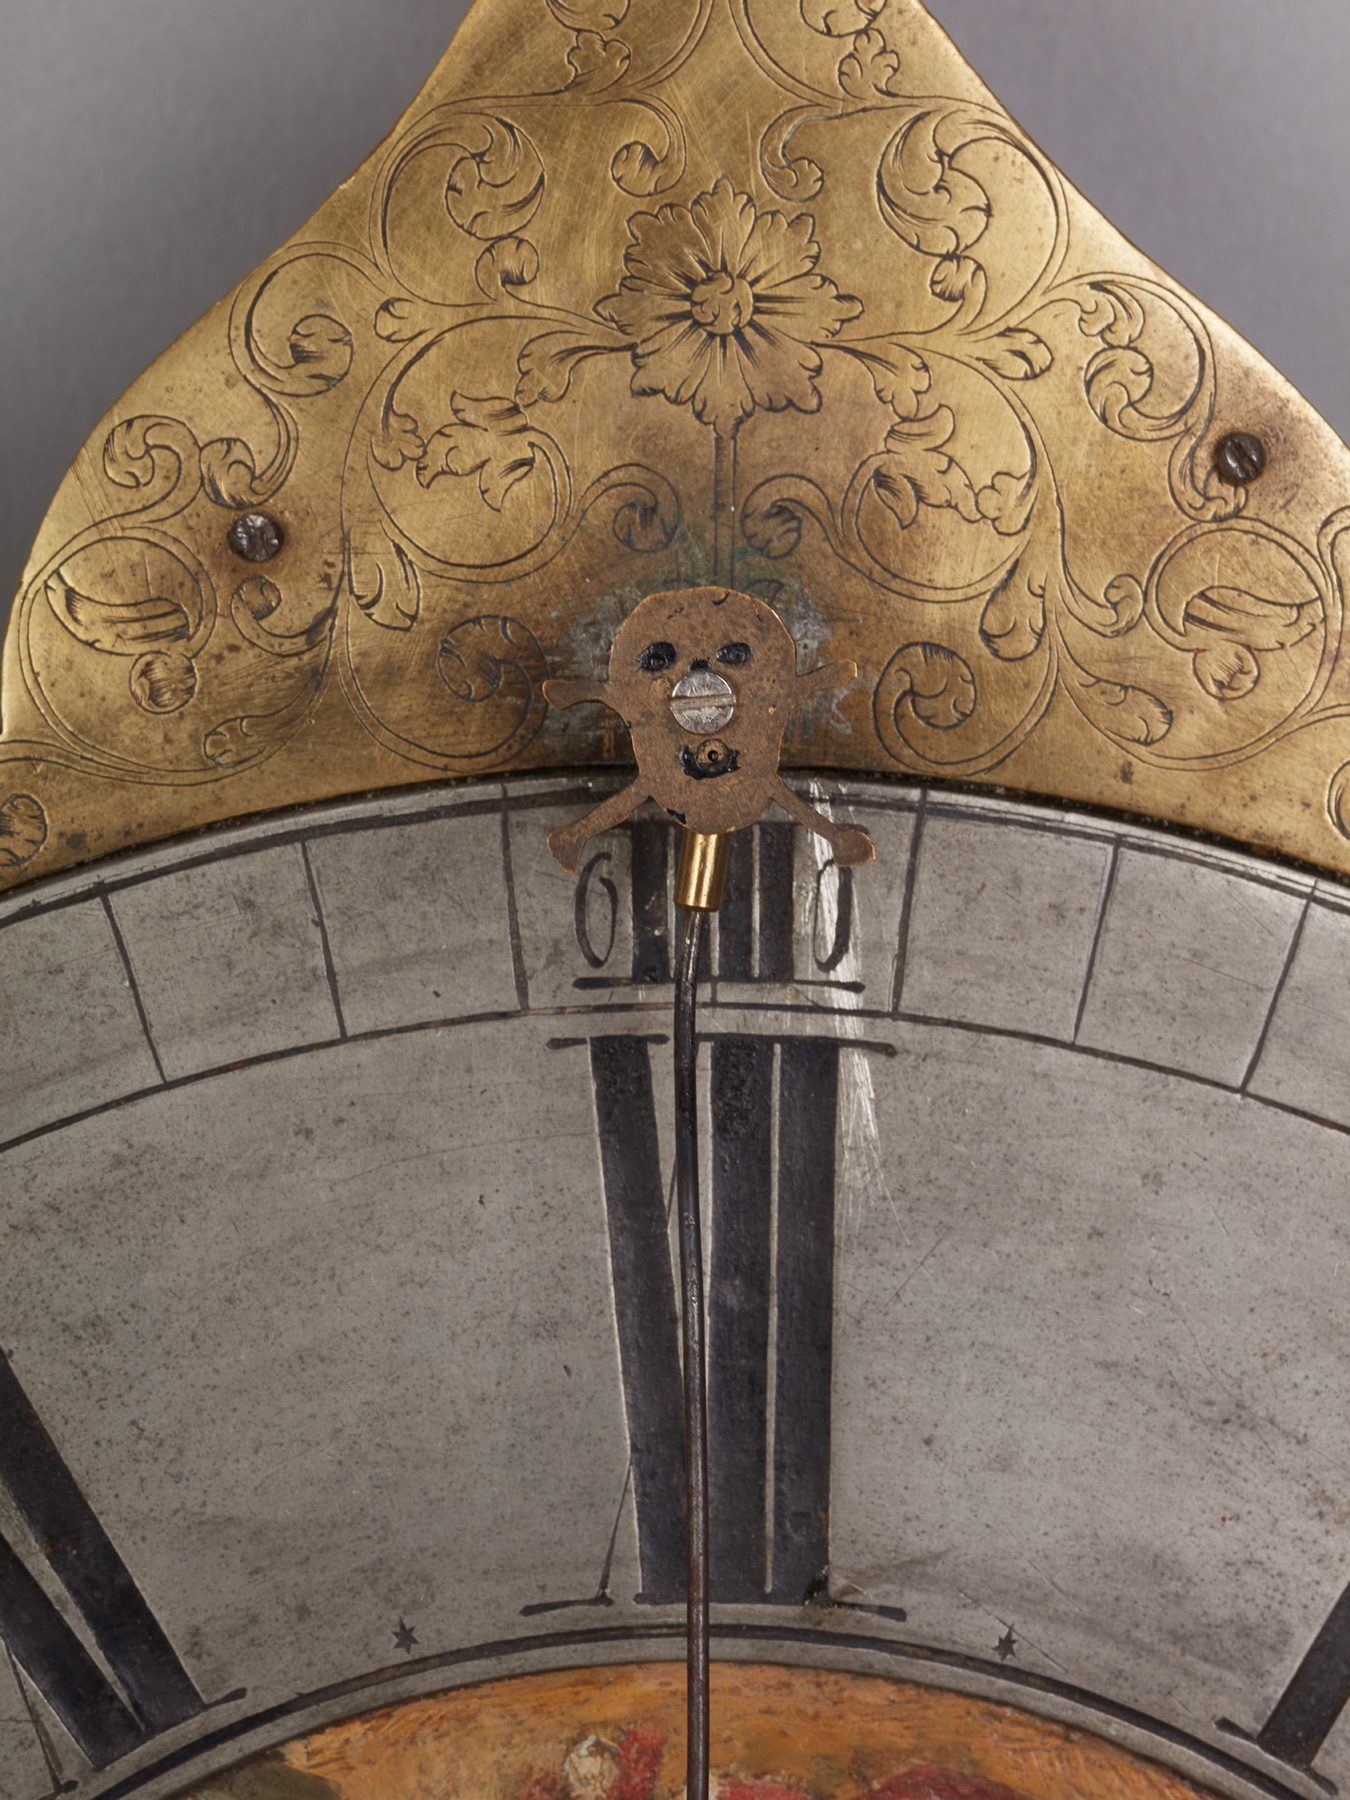 An Unusual South German Teller Uhr Wall Clock With Cow